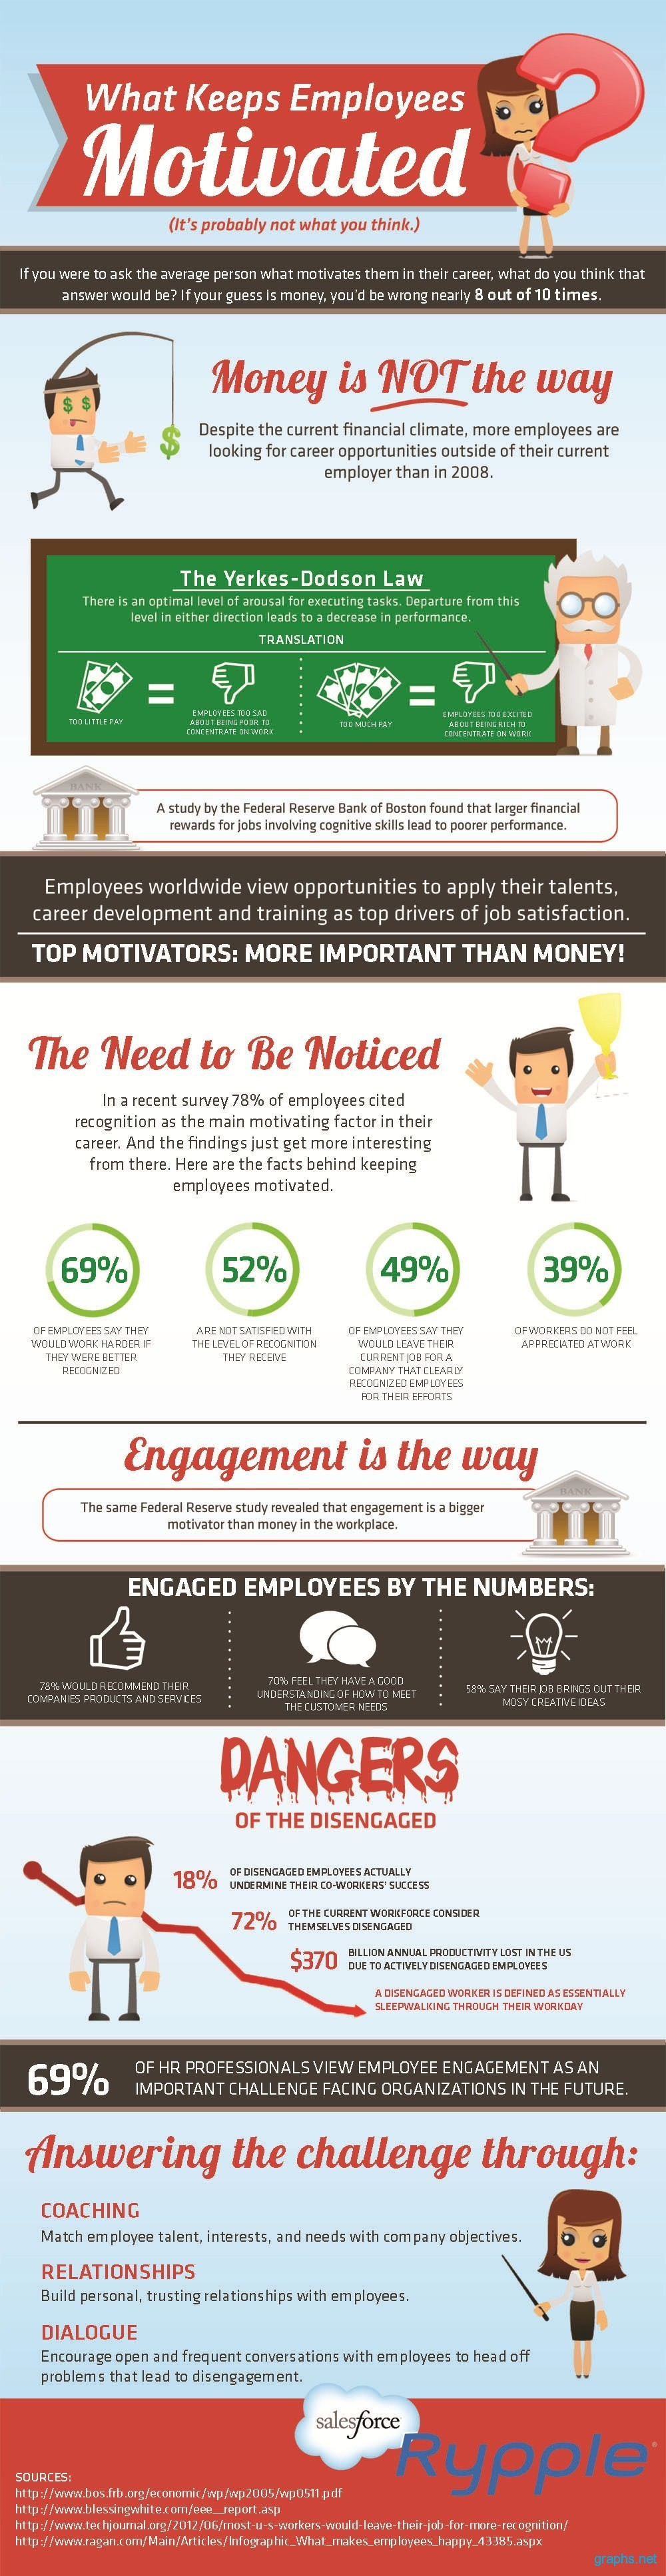 Factors that Keep Employees Motivated